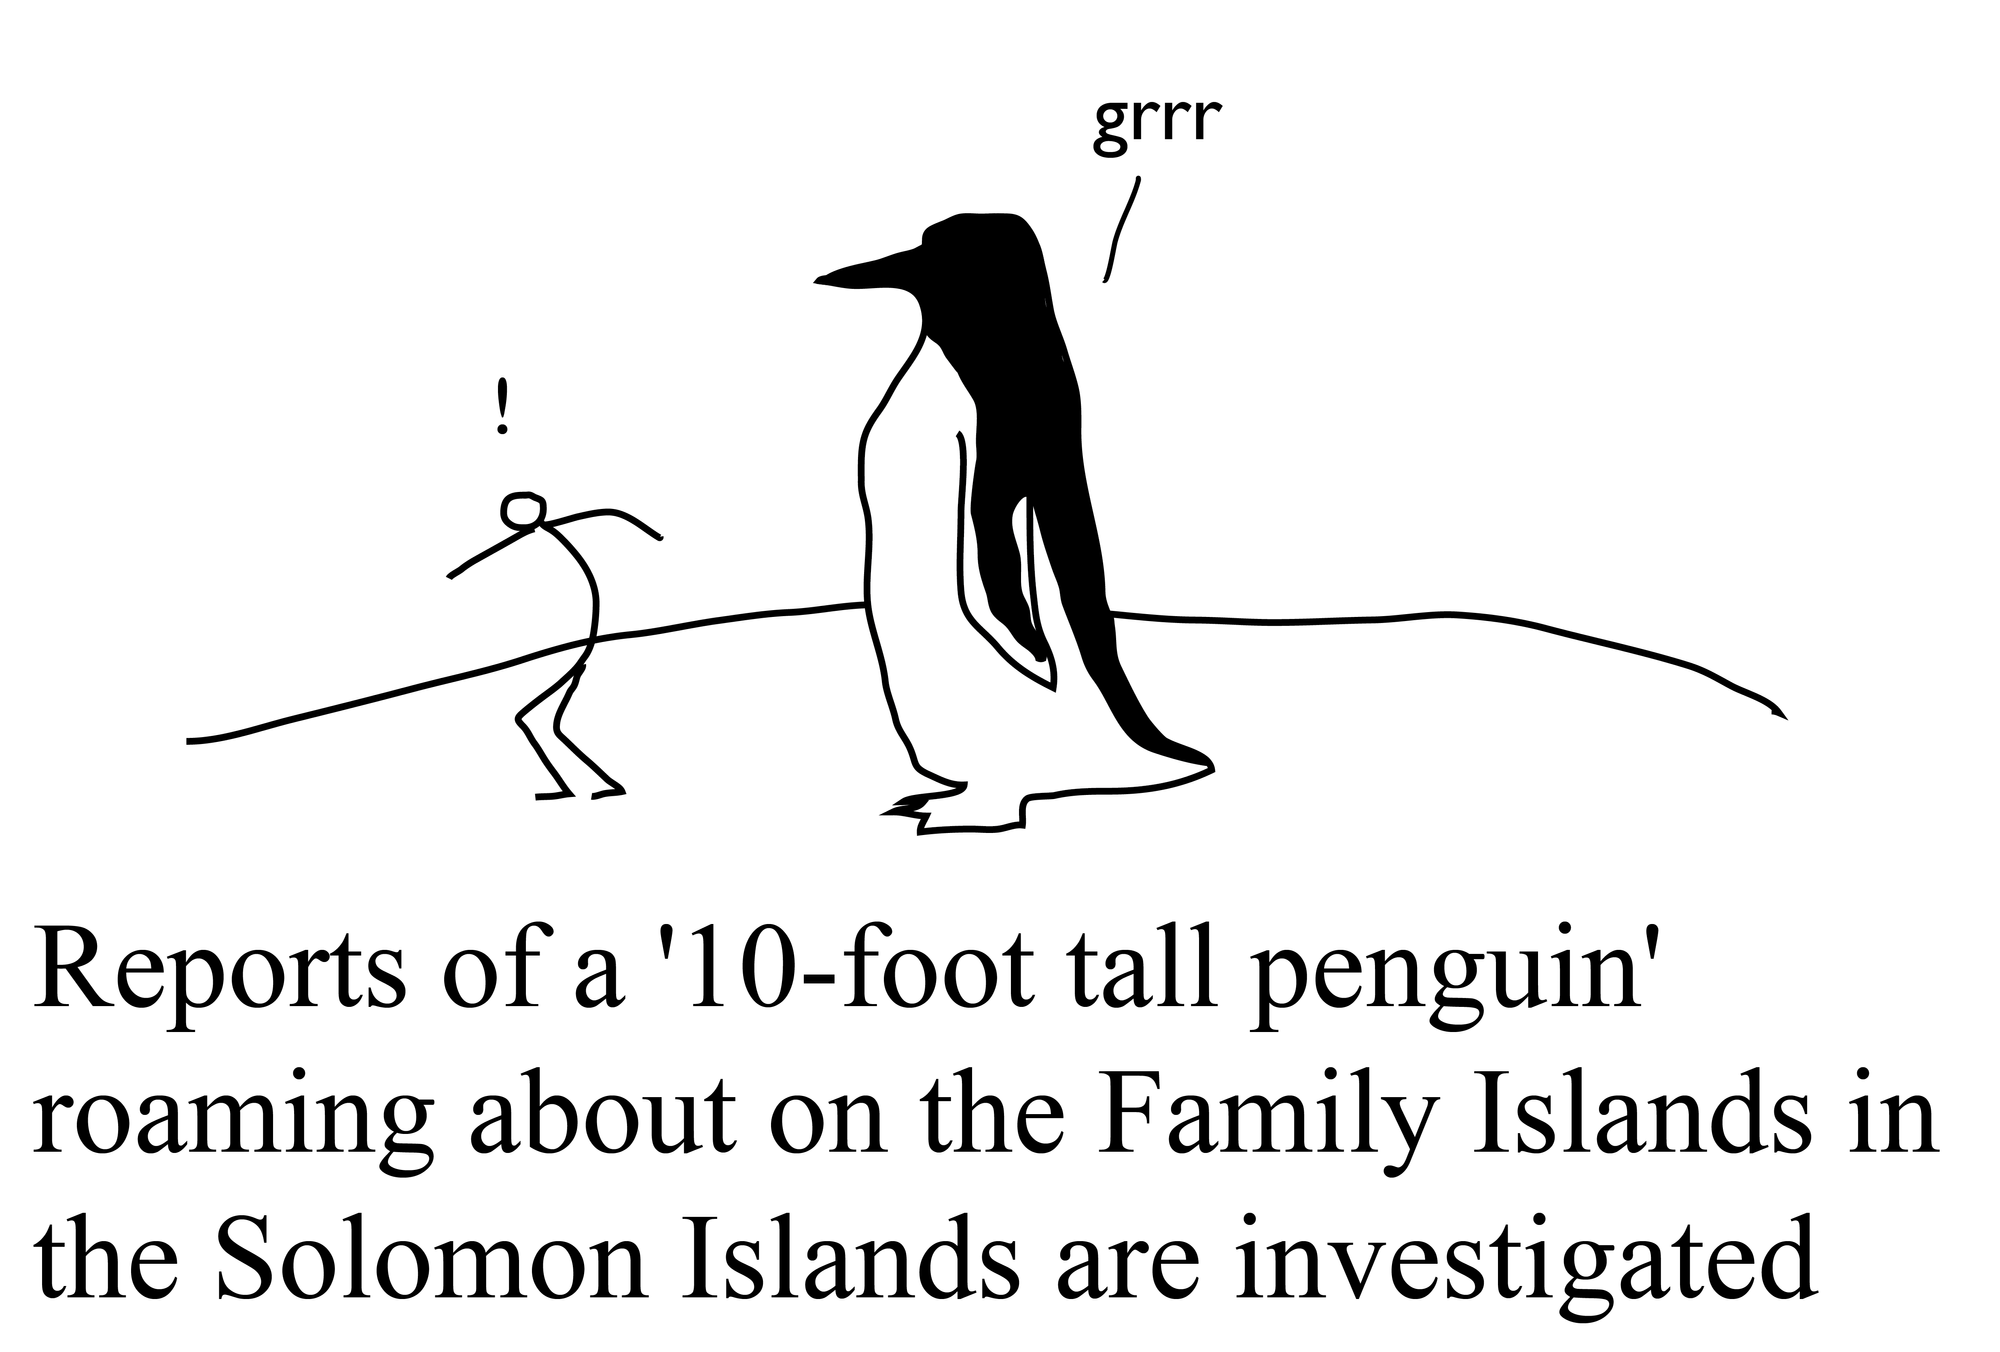 Reports of a '10-foot tall penguin' roaming about on the Family Islands in the Solomon Islands are investigated